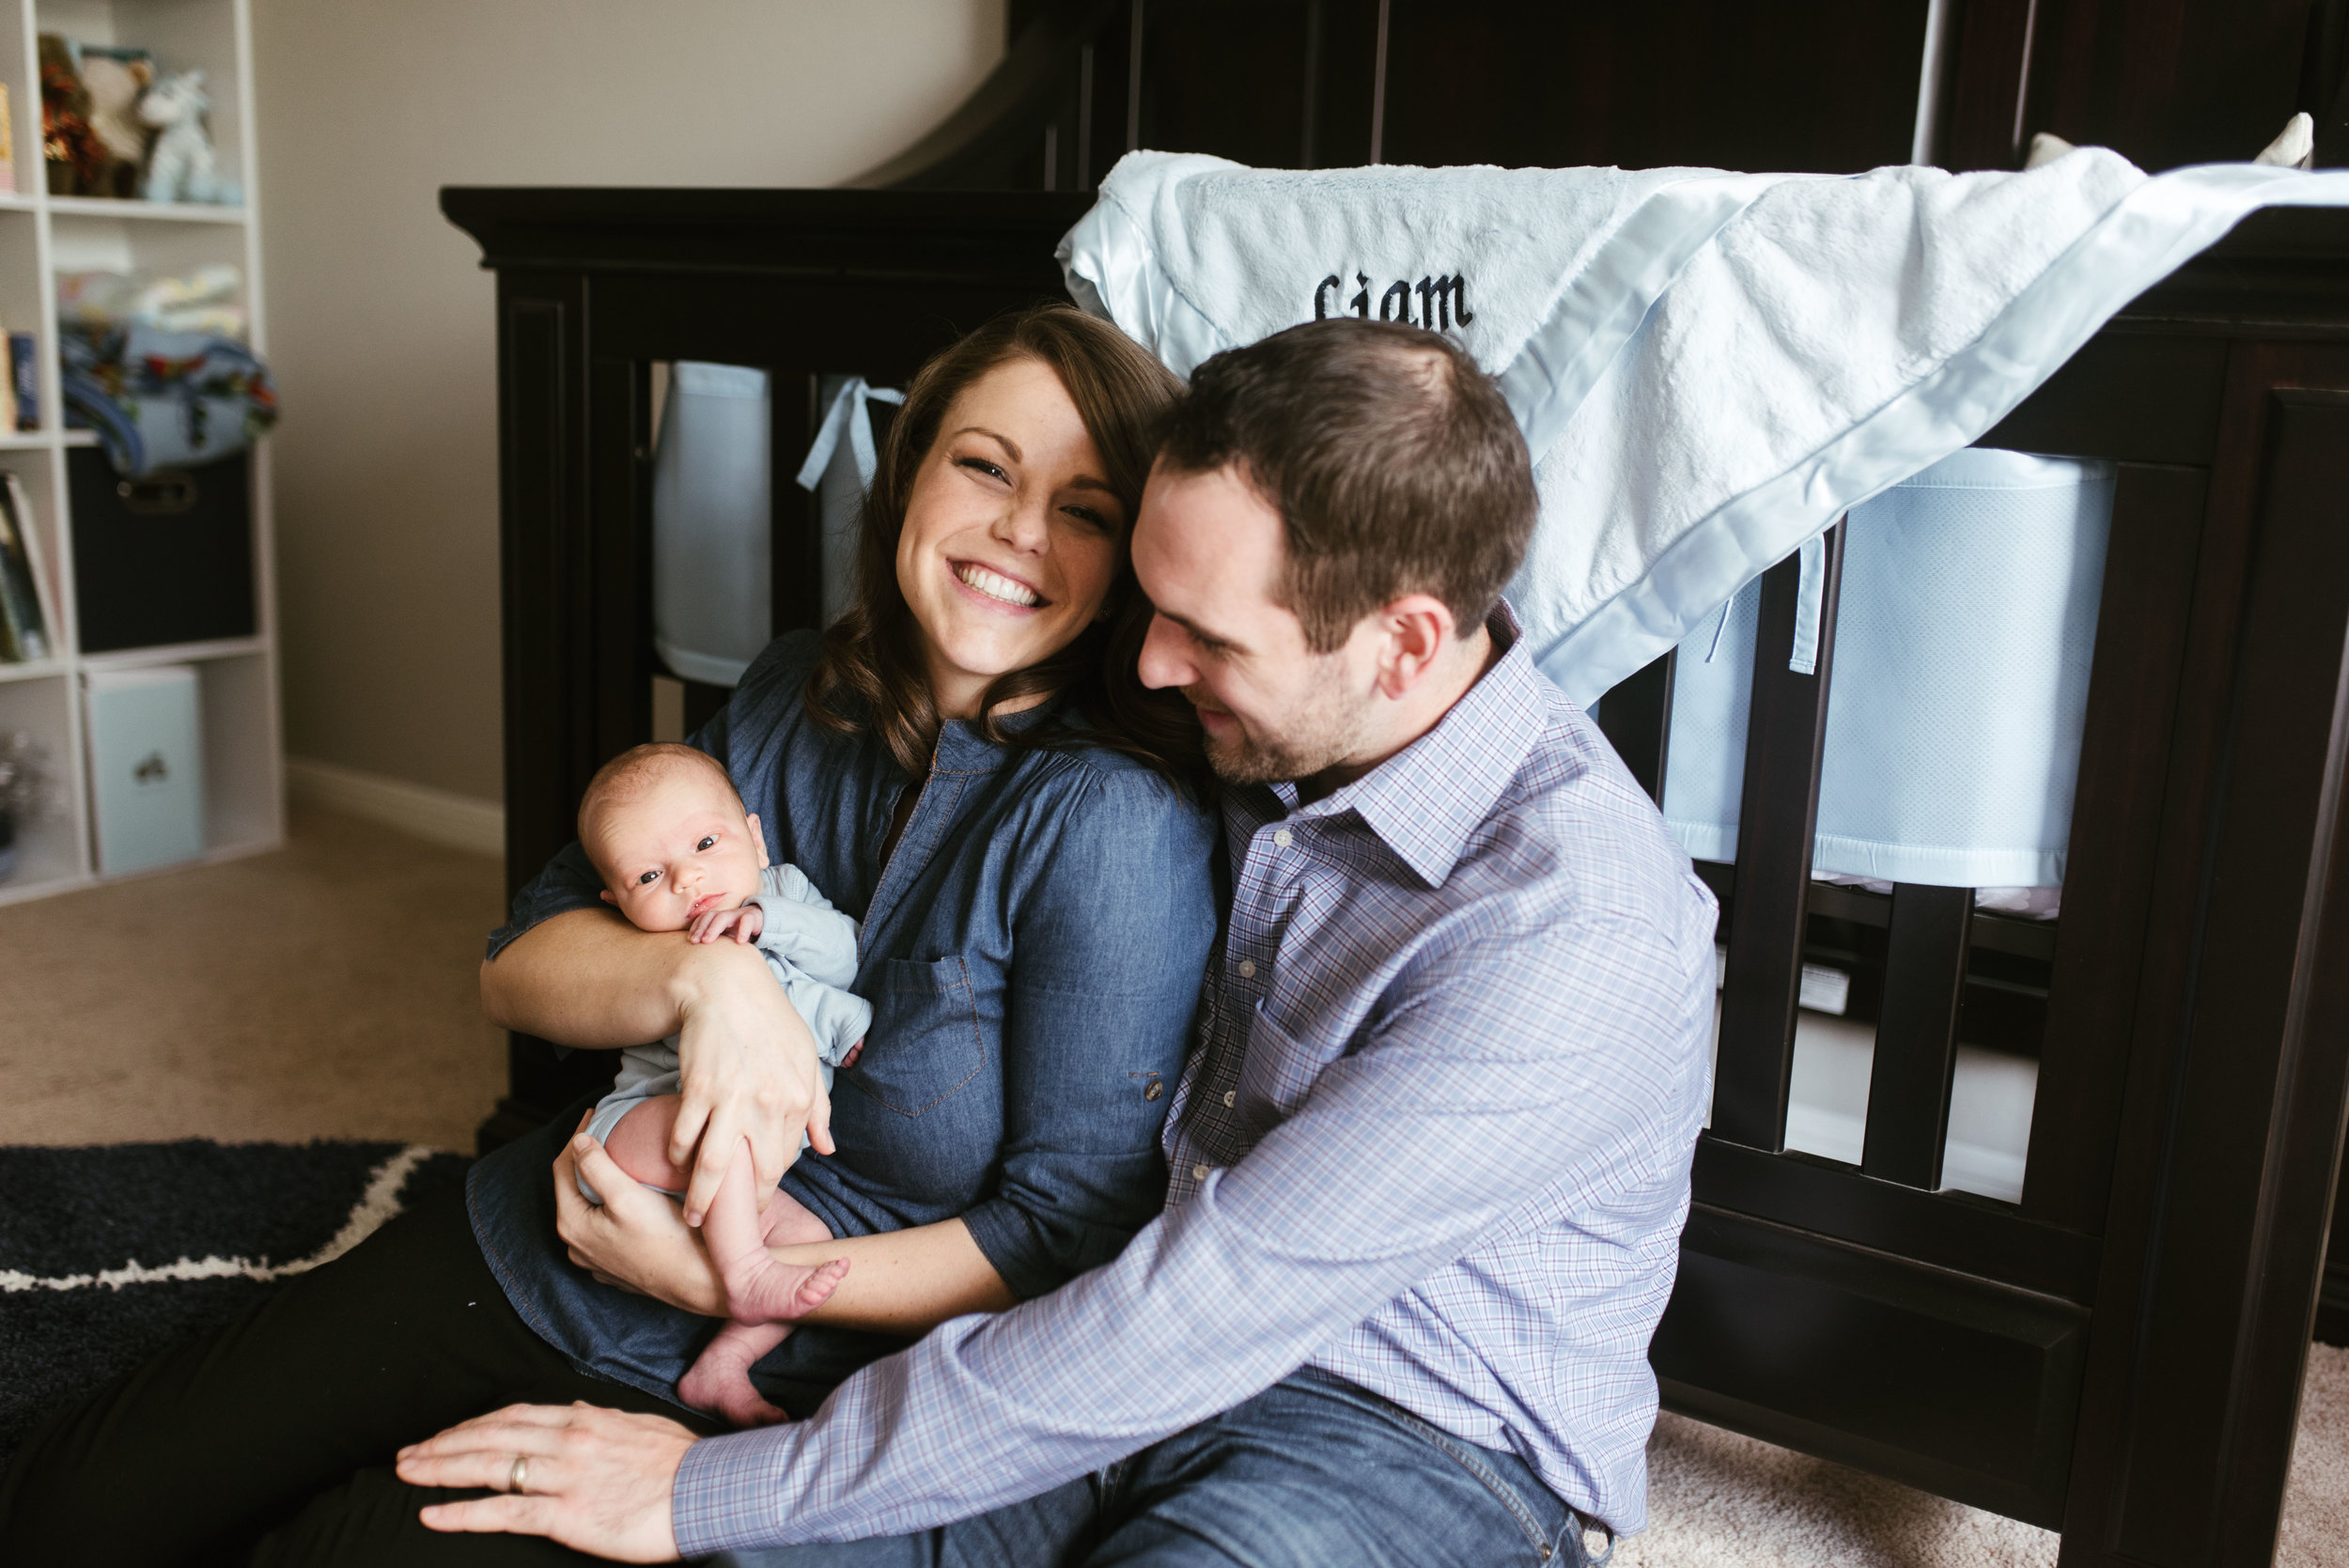 Sugar Land Lifestyle Newborn Session | Houston Natural Light Photographer | www.jordanmitchellphotography.com